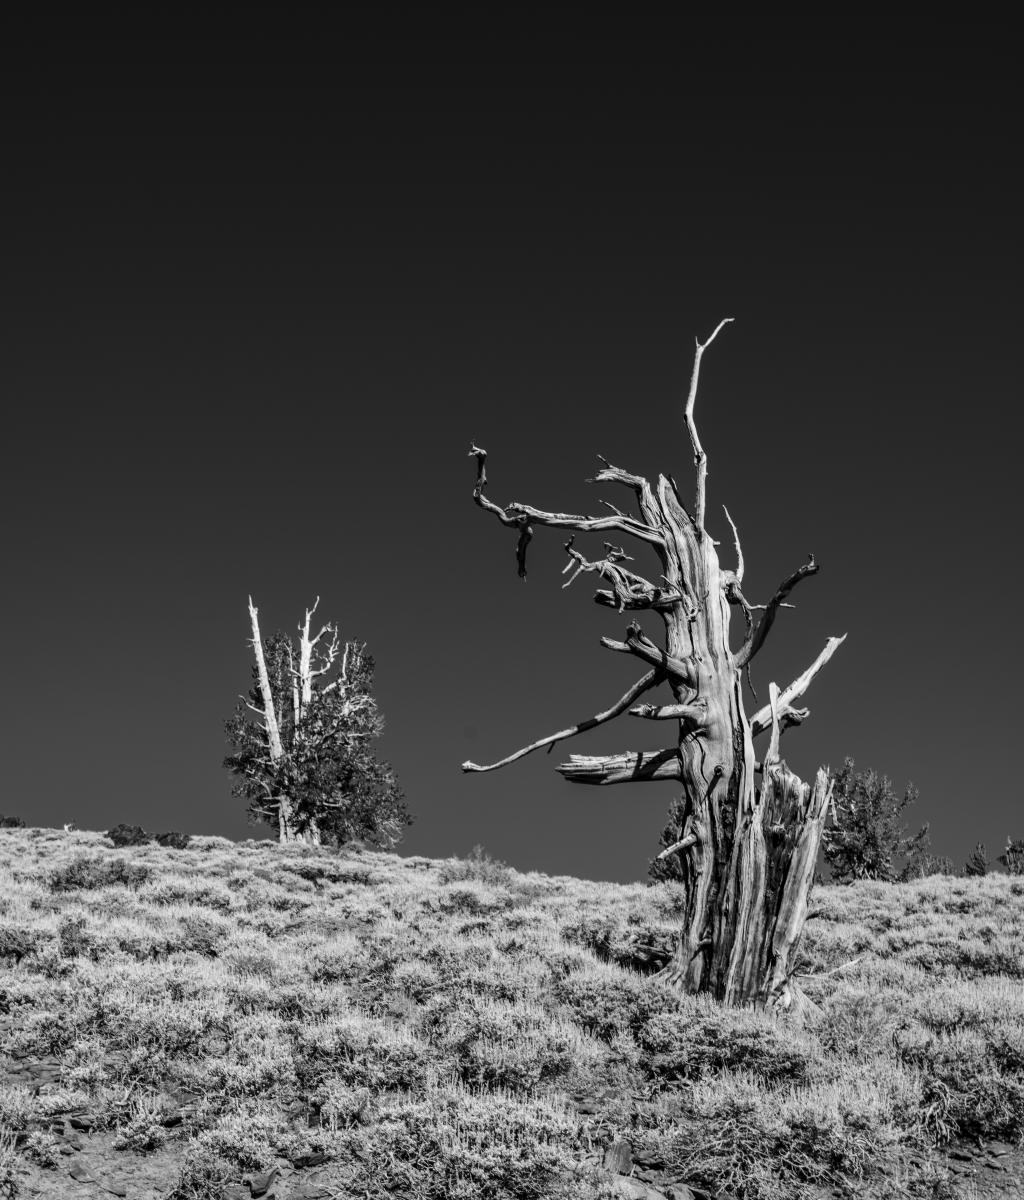 Untitled 2 : Bristlecone Pine Trees (B&W) : Bruno Mahlmann Photography